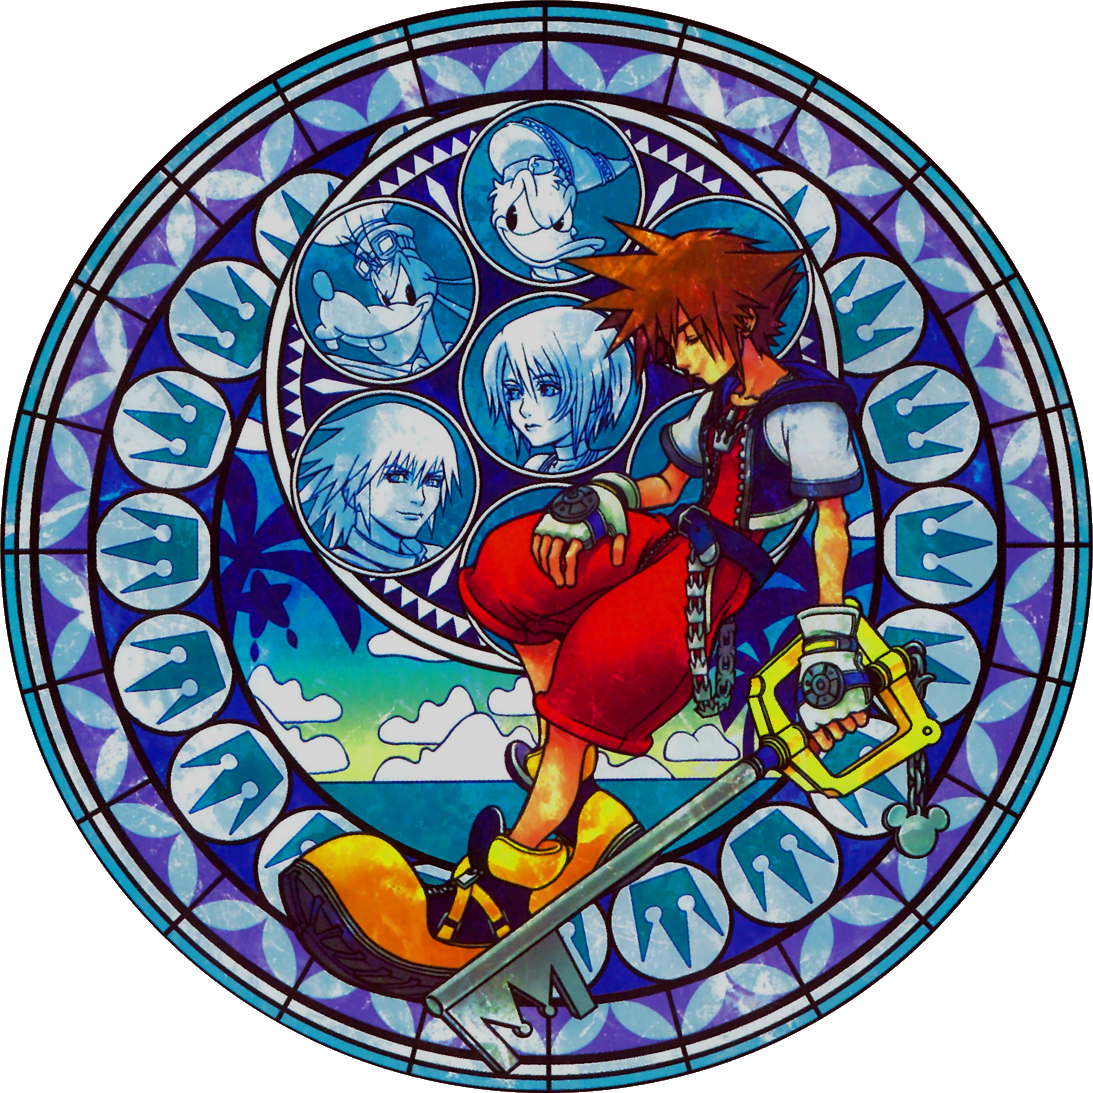 Kingdom Hearts Iphone Wallpaper: Kingdom Hearts In High Definition